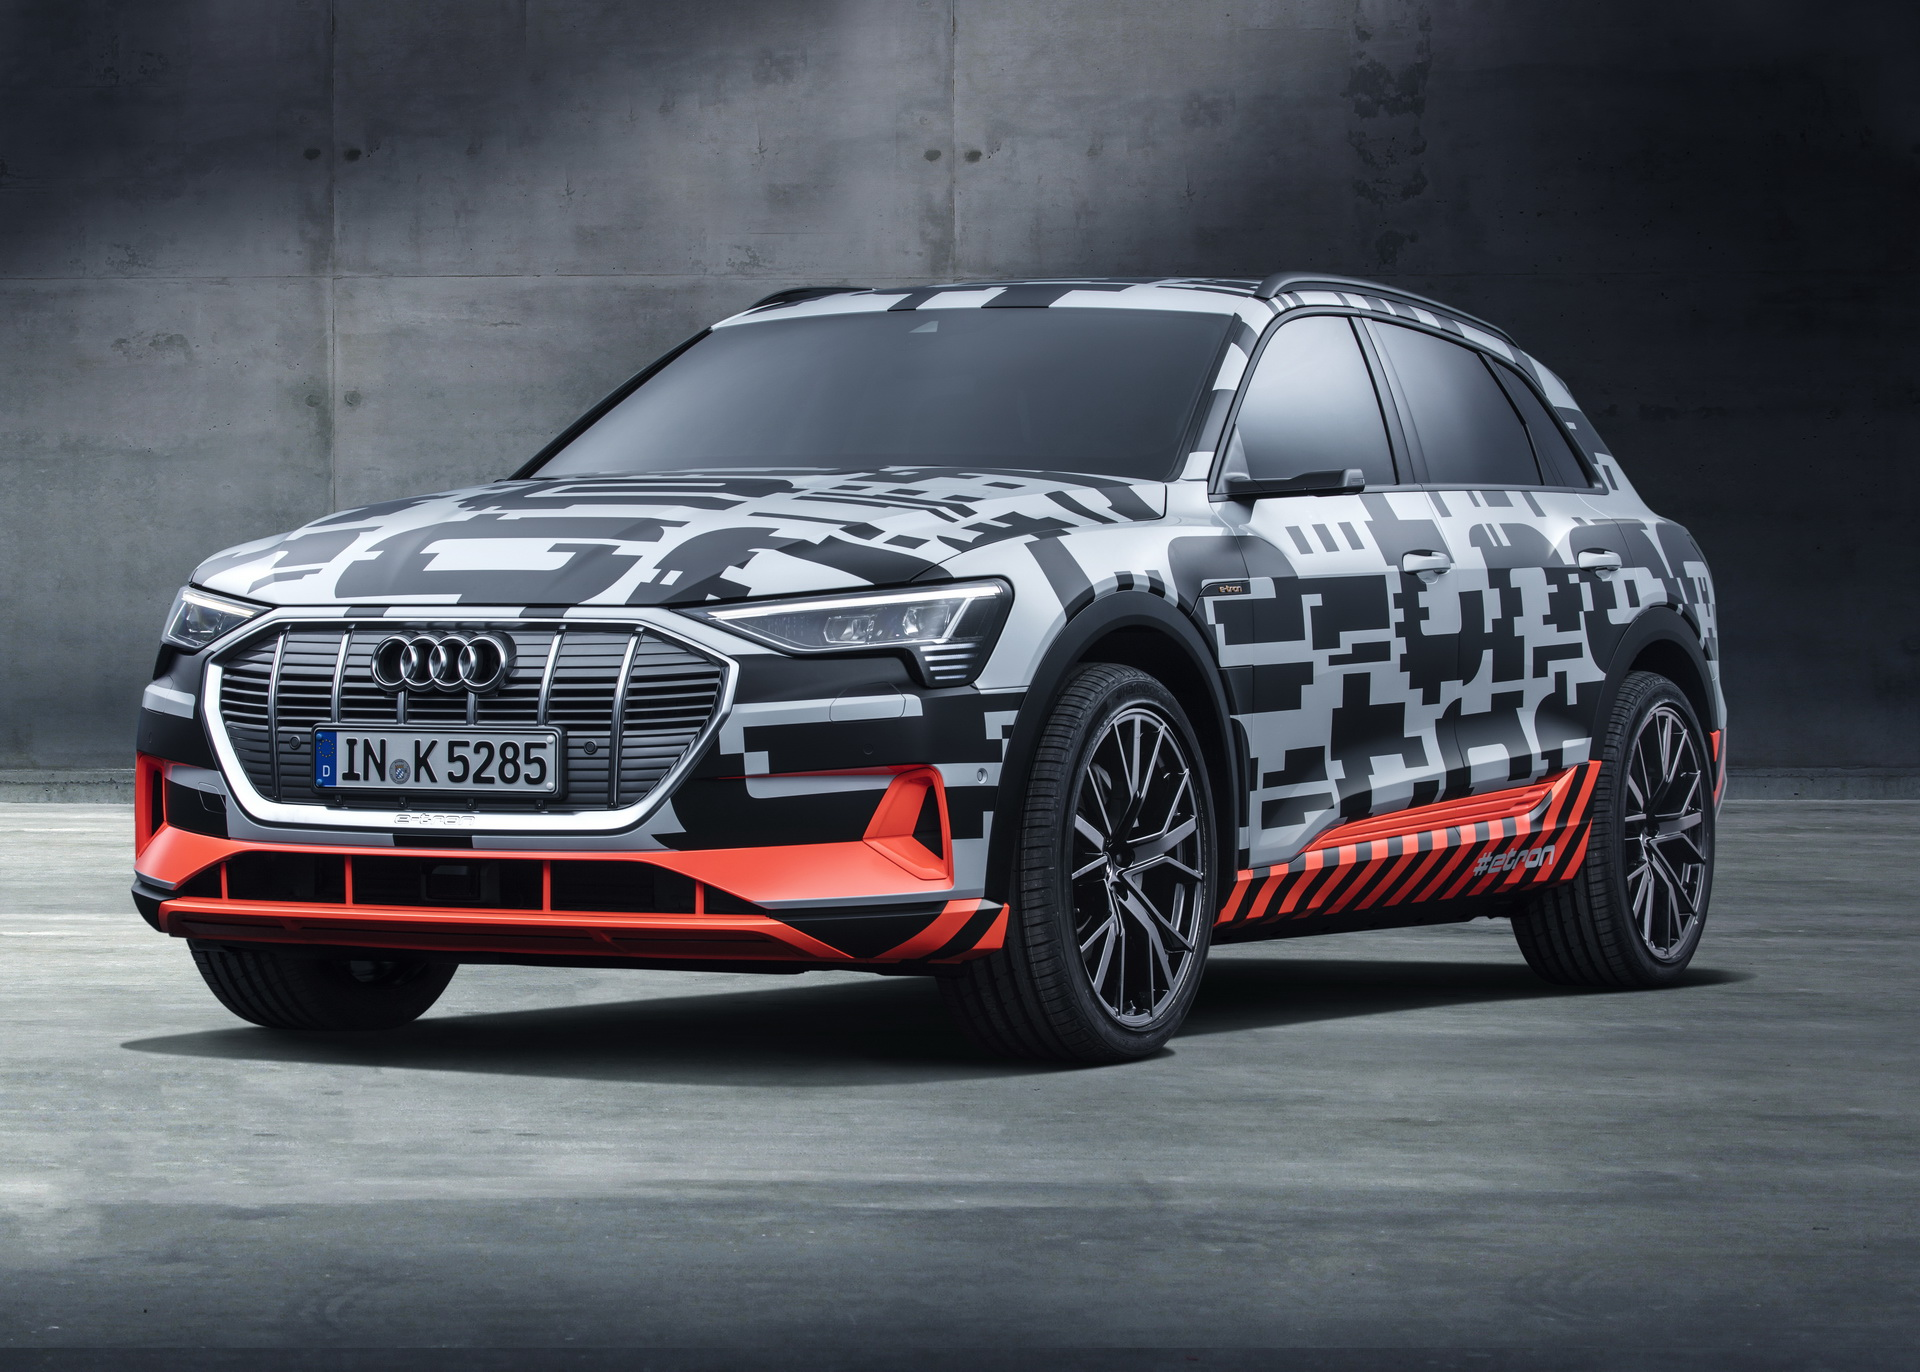 Audi said that its new all-electric E-Tron crossover is going to cost at least €80,000 in Germany